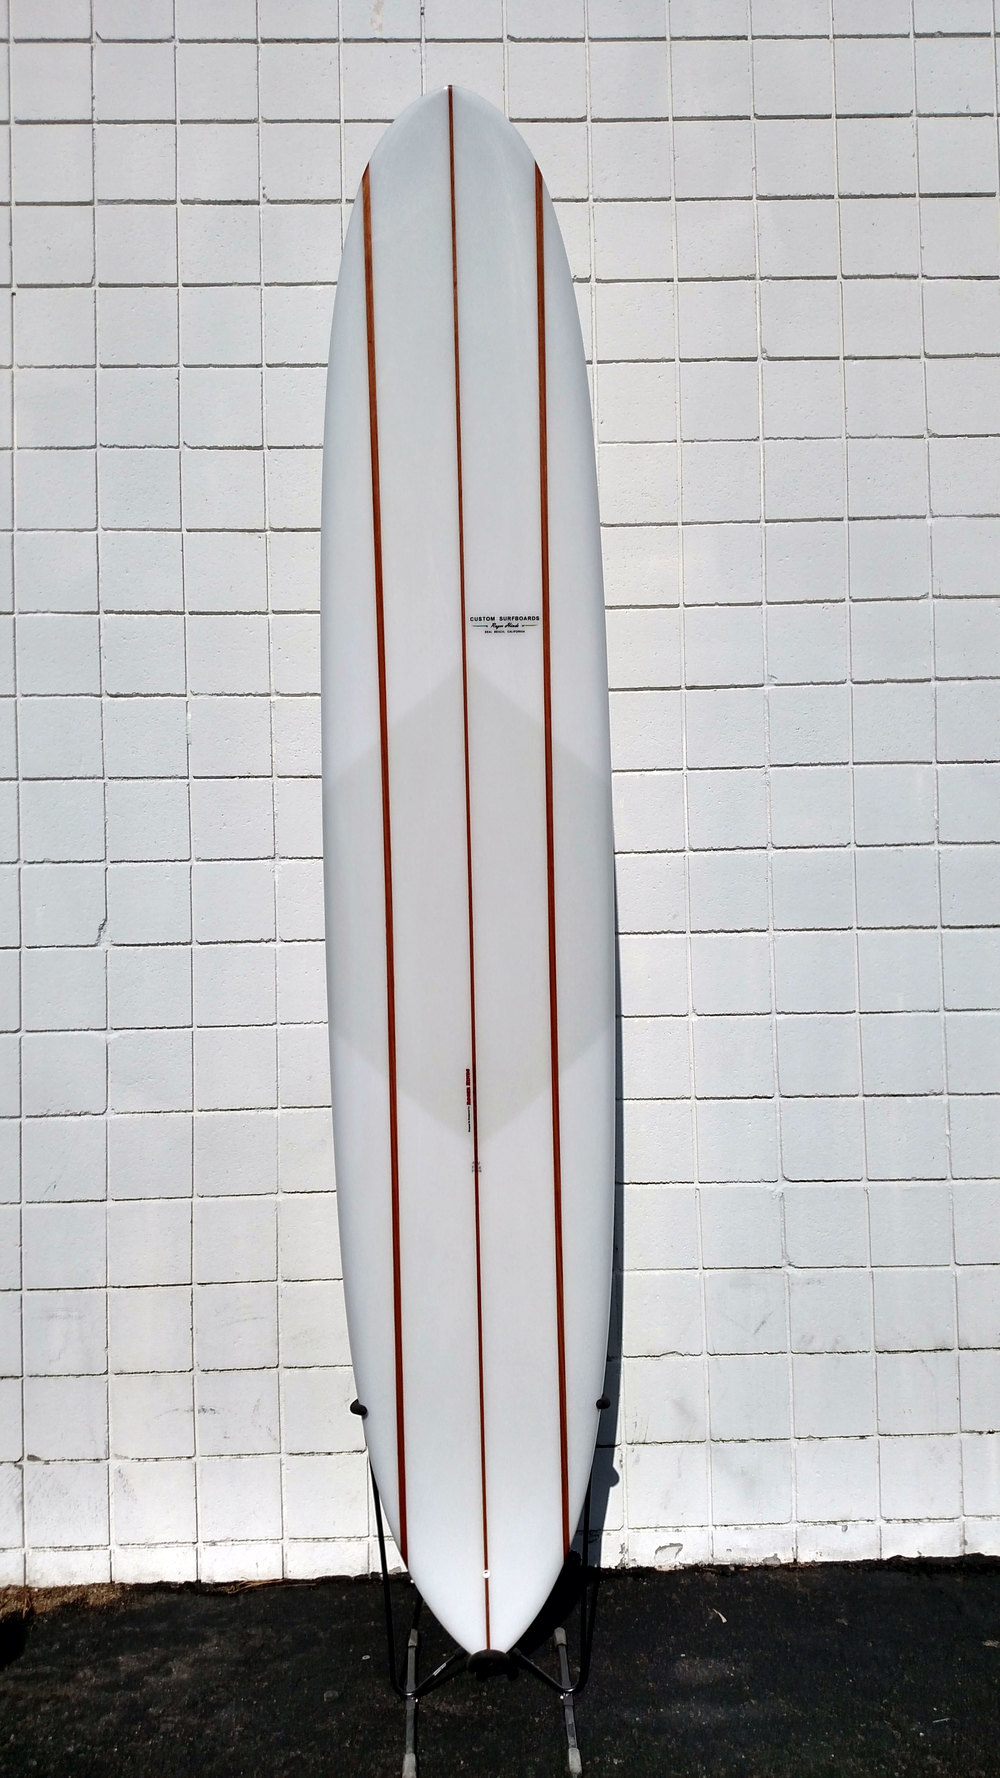 Roger-Hinds-Surfboards-10-Ft-Cedar-3-Stringer.jpg